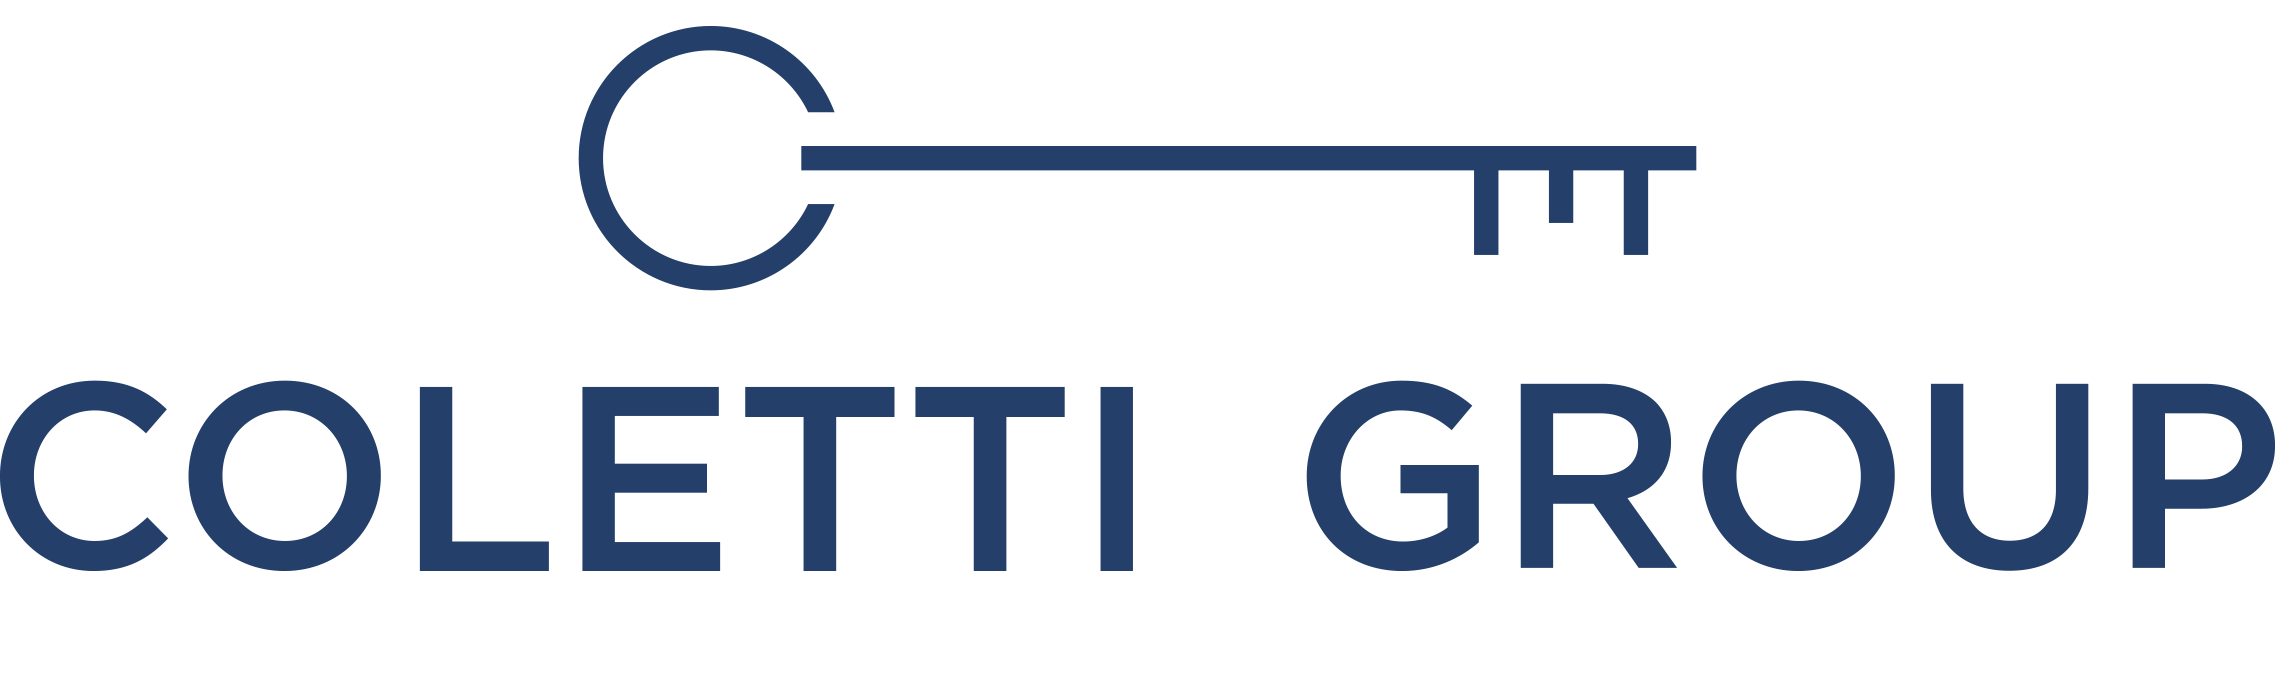 Lisa Coletti - Coletti Group Logo.png